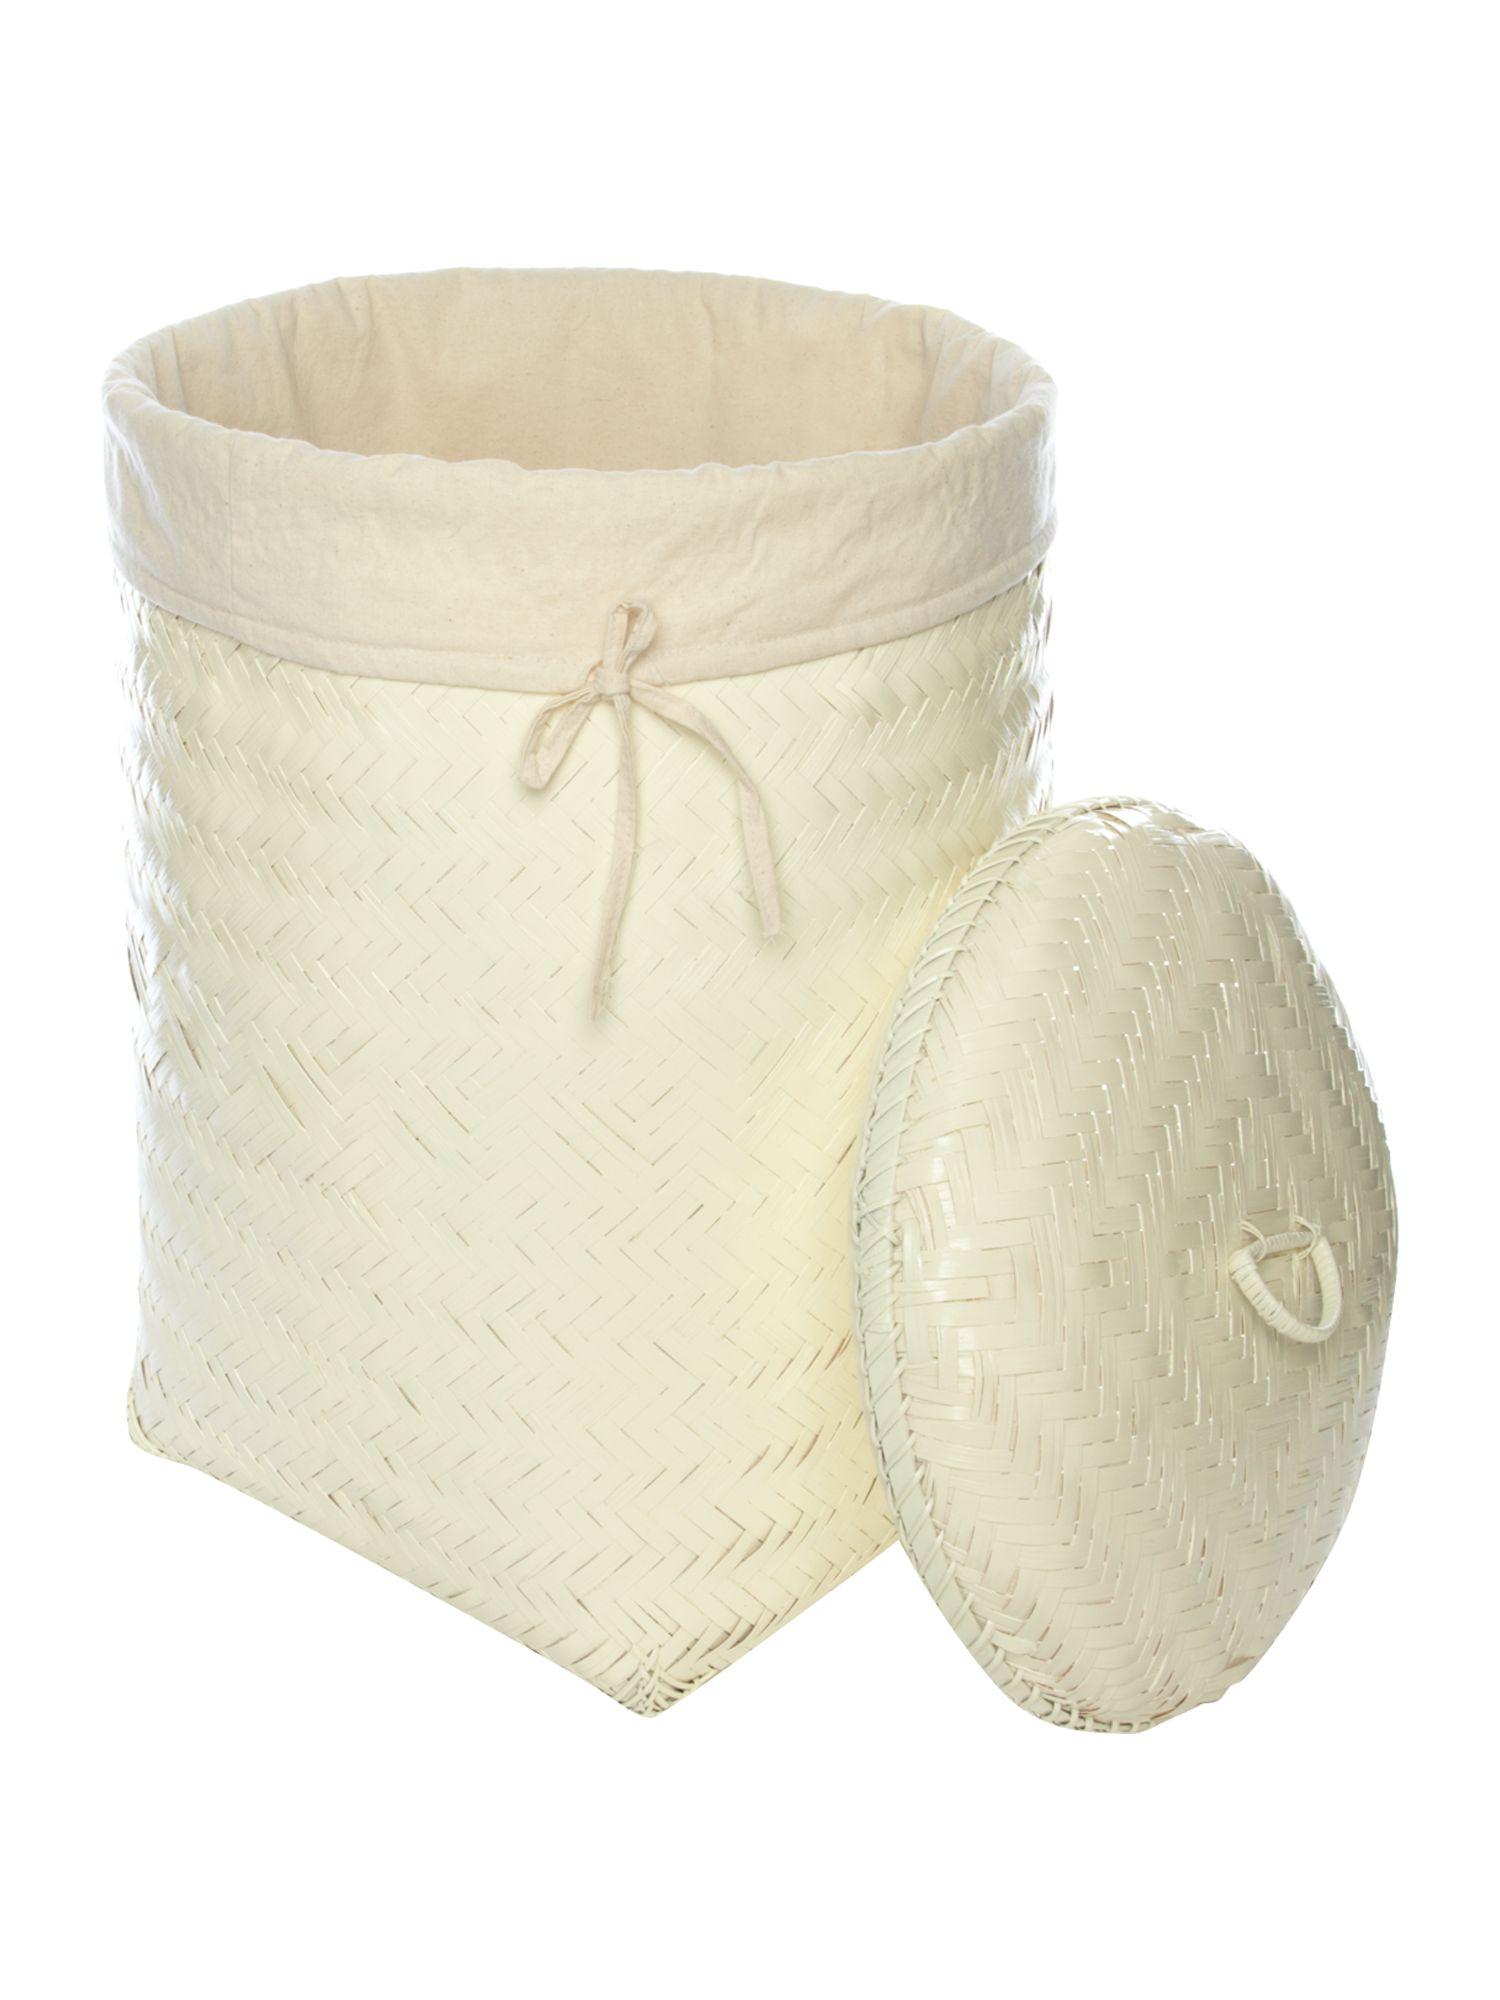 Shabby Chic bamboo baskets in cream.